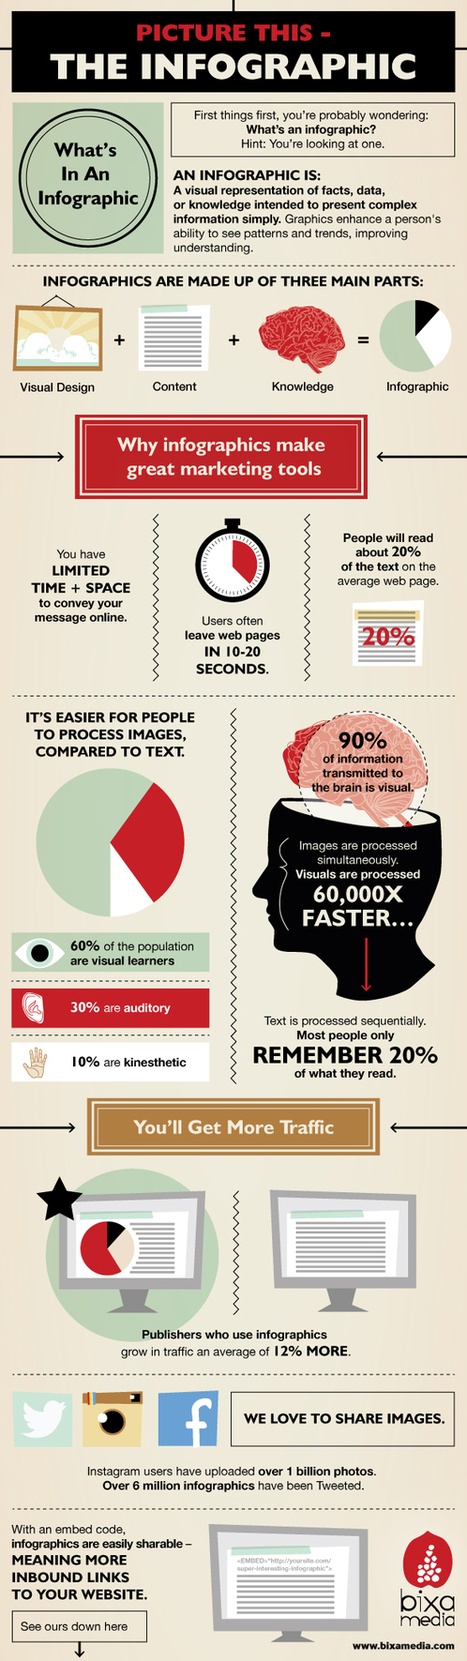 Why Infographics Make Great Marketing Tools | Content and Marketing | Scoop.it